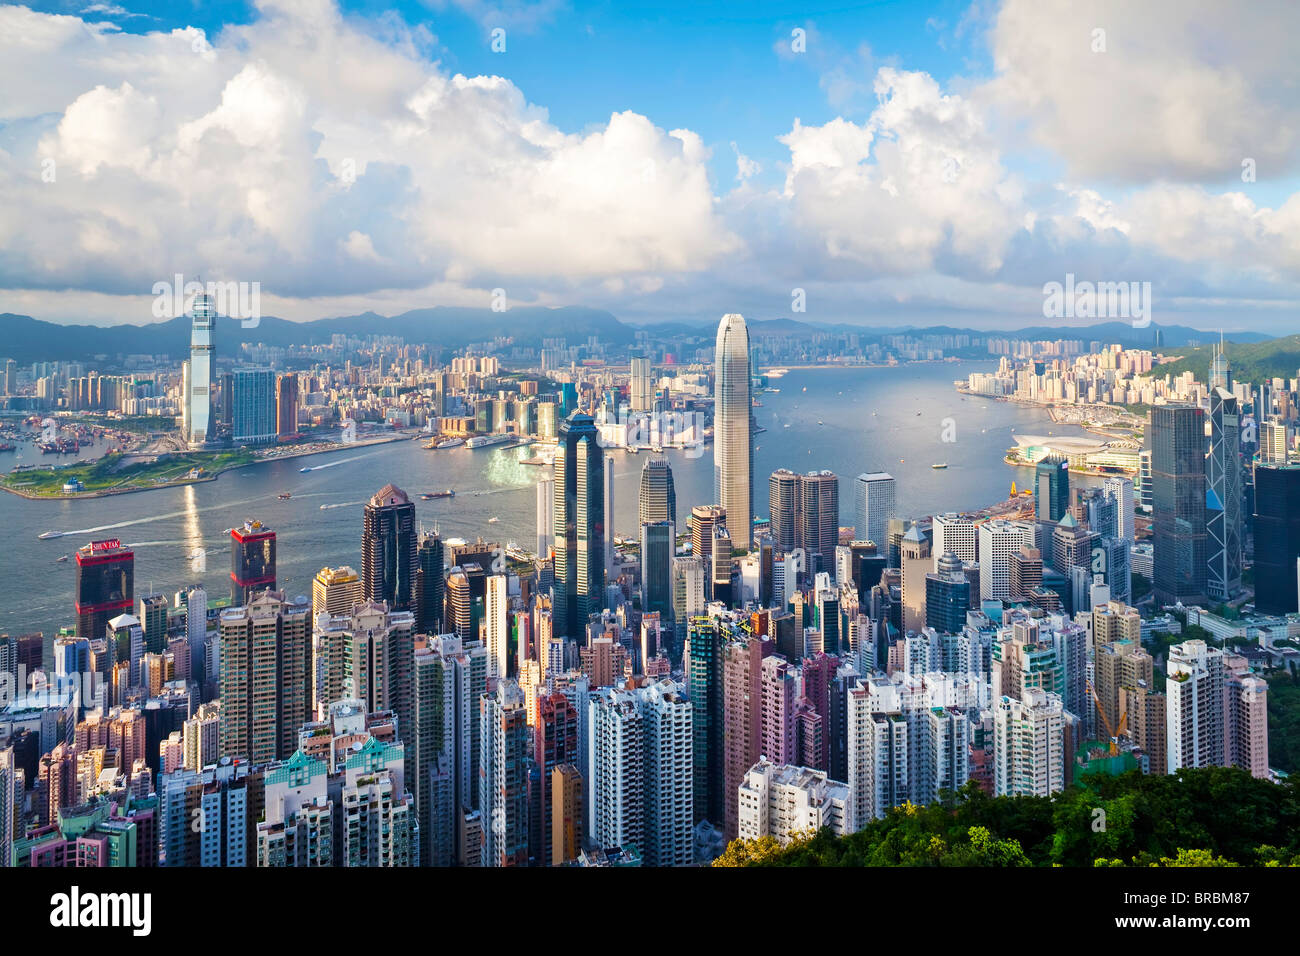 City skyline and Victoria Harbour viewed from Victoria Peak, Hong Kong, China - Stock Image